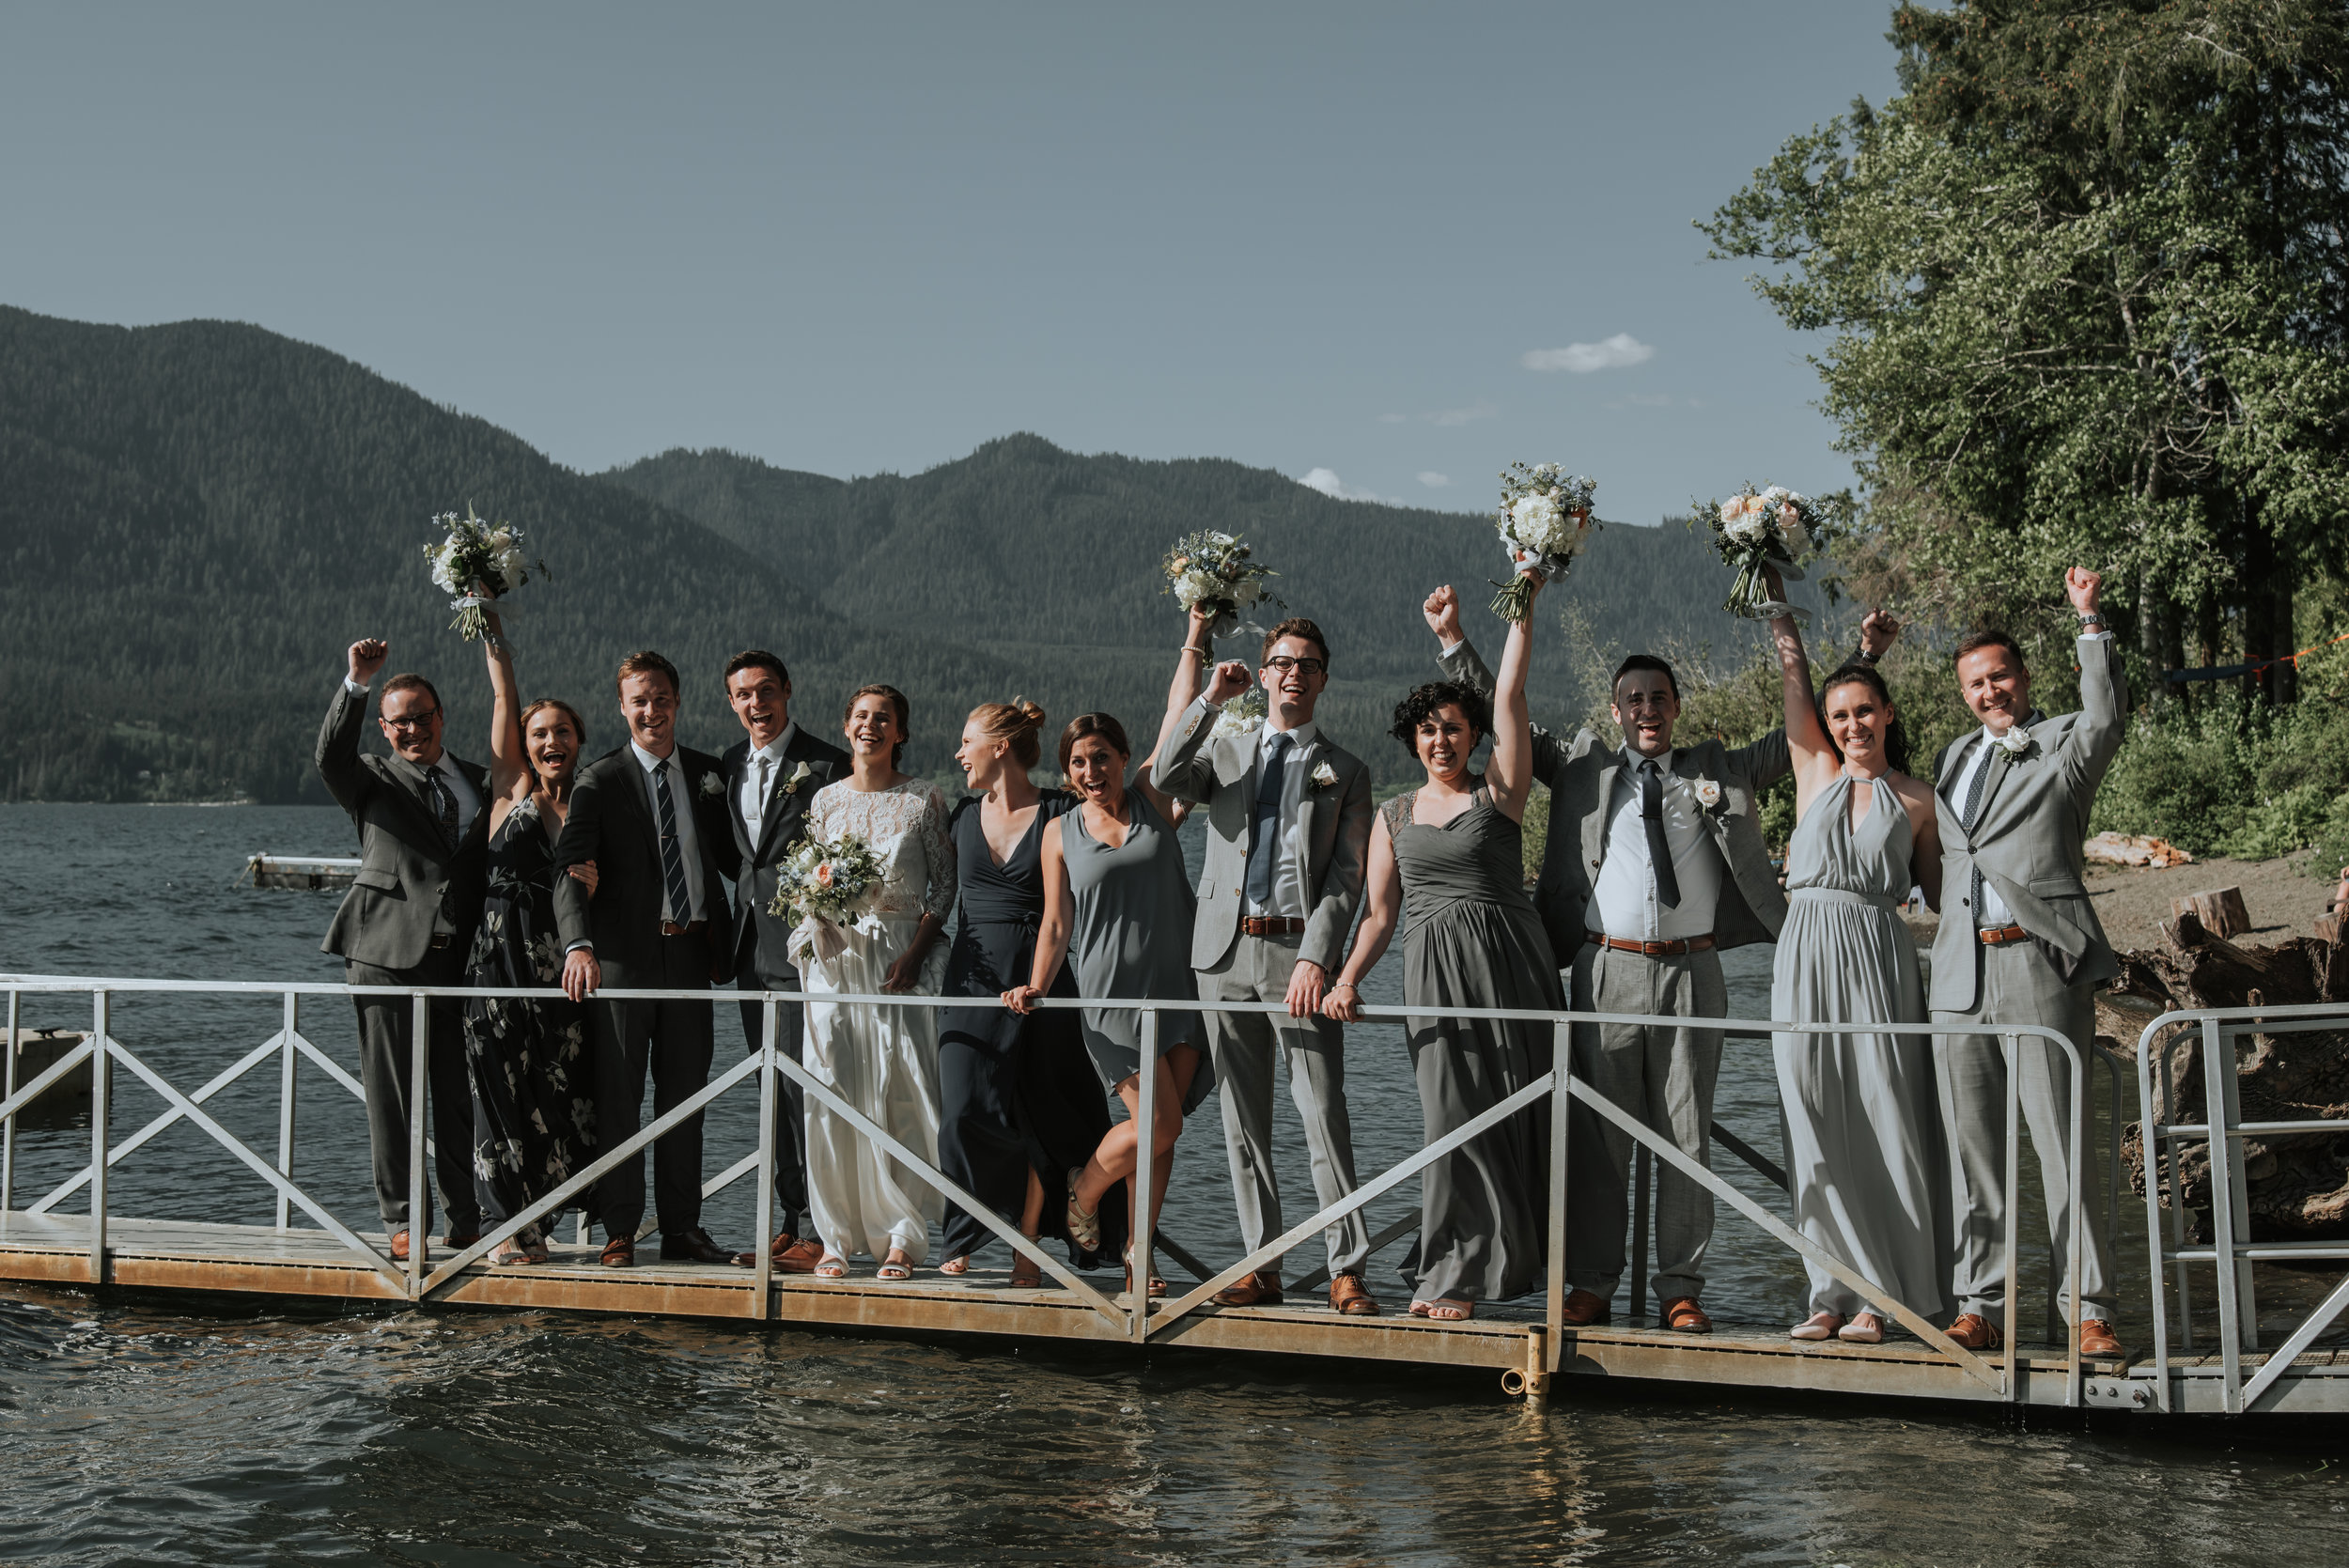 The happy wedding party :) Photo by Logan Smith Photography.